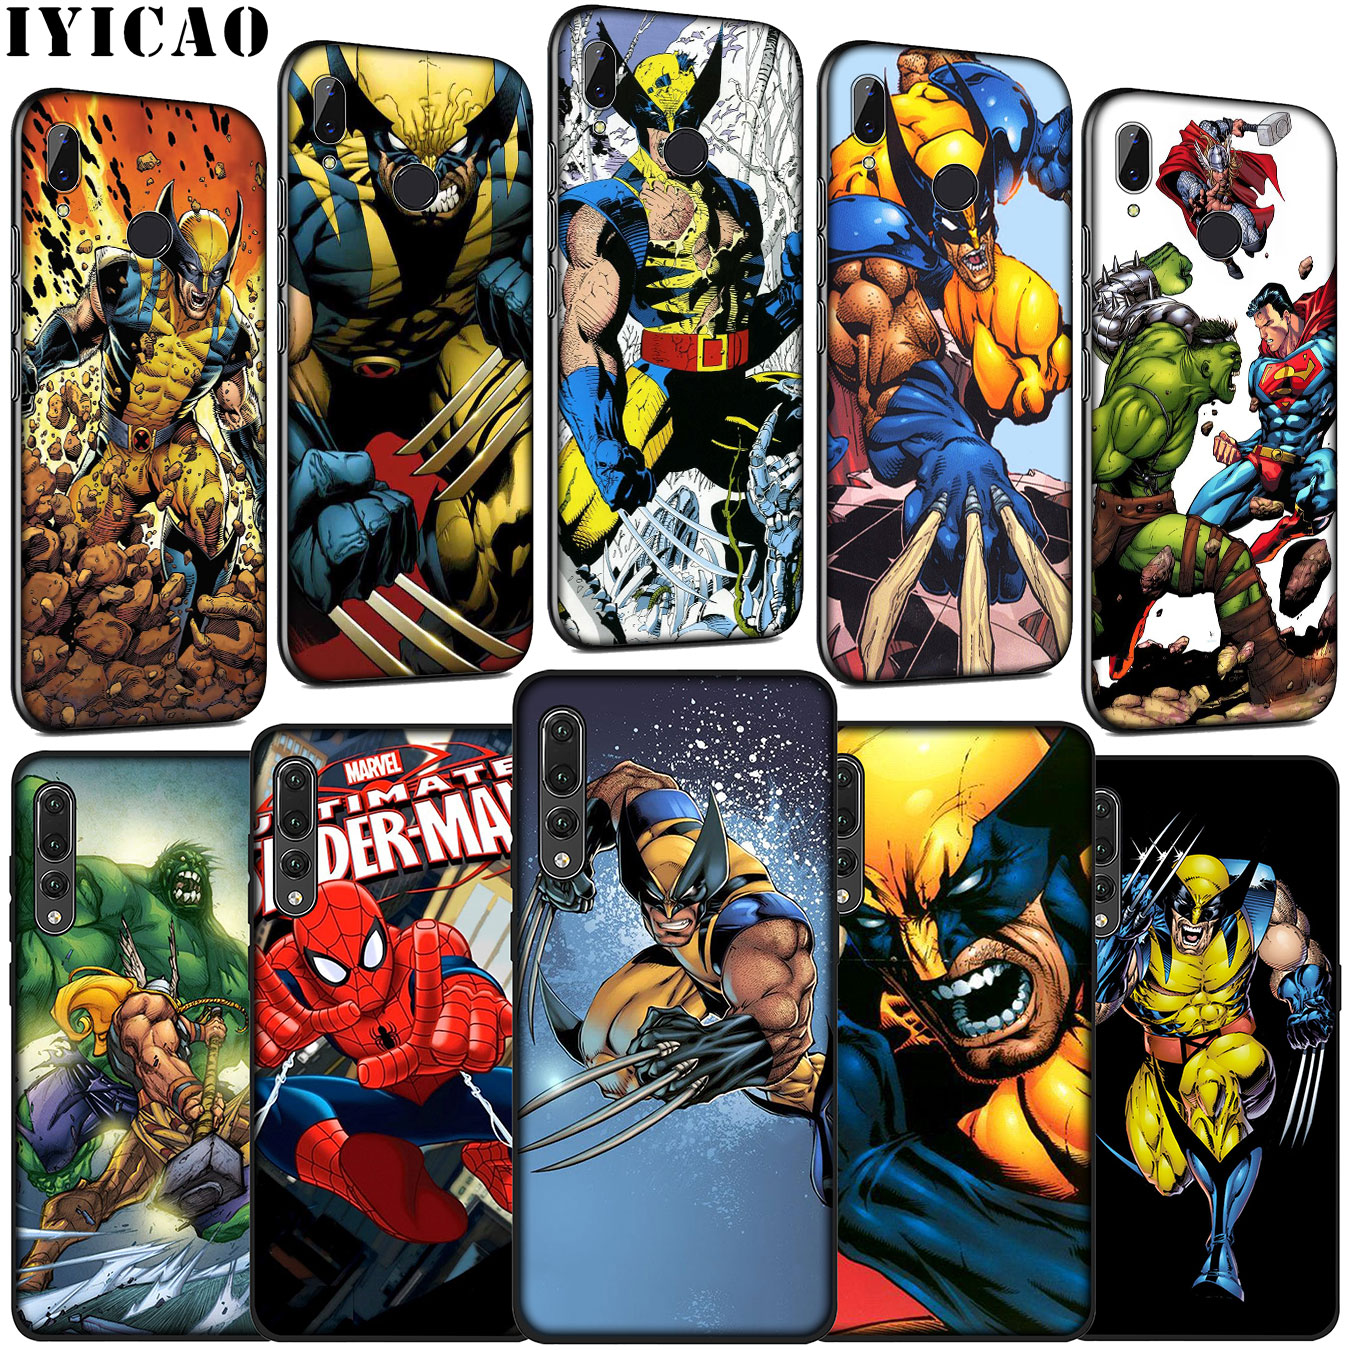 IYICAO Thor Odinson Marvel Comics Wolverine Soft Case for Huawei P30 P20 Pro P10 P9 Lite Mini 2017 2016 P Smart Z Plus 2019 image